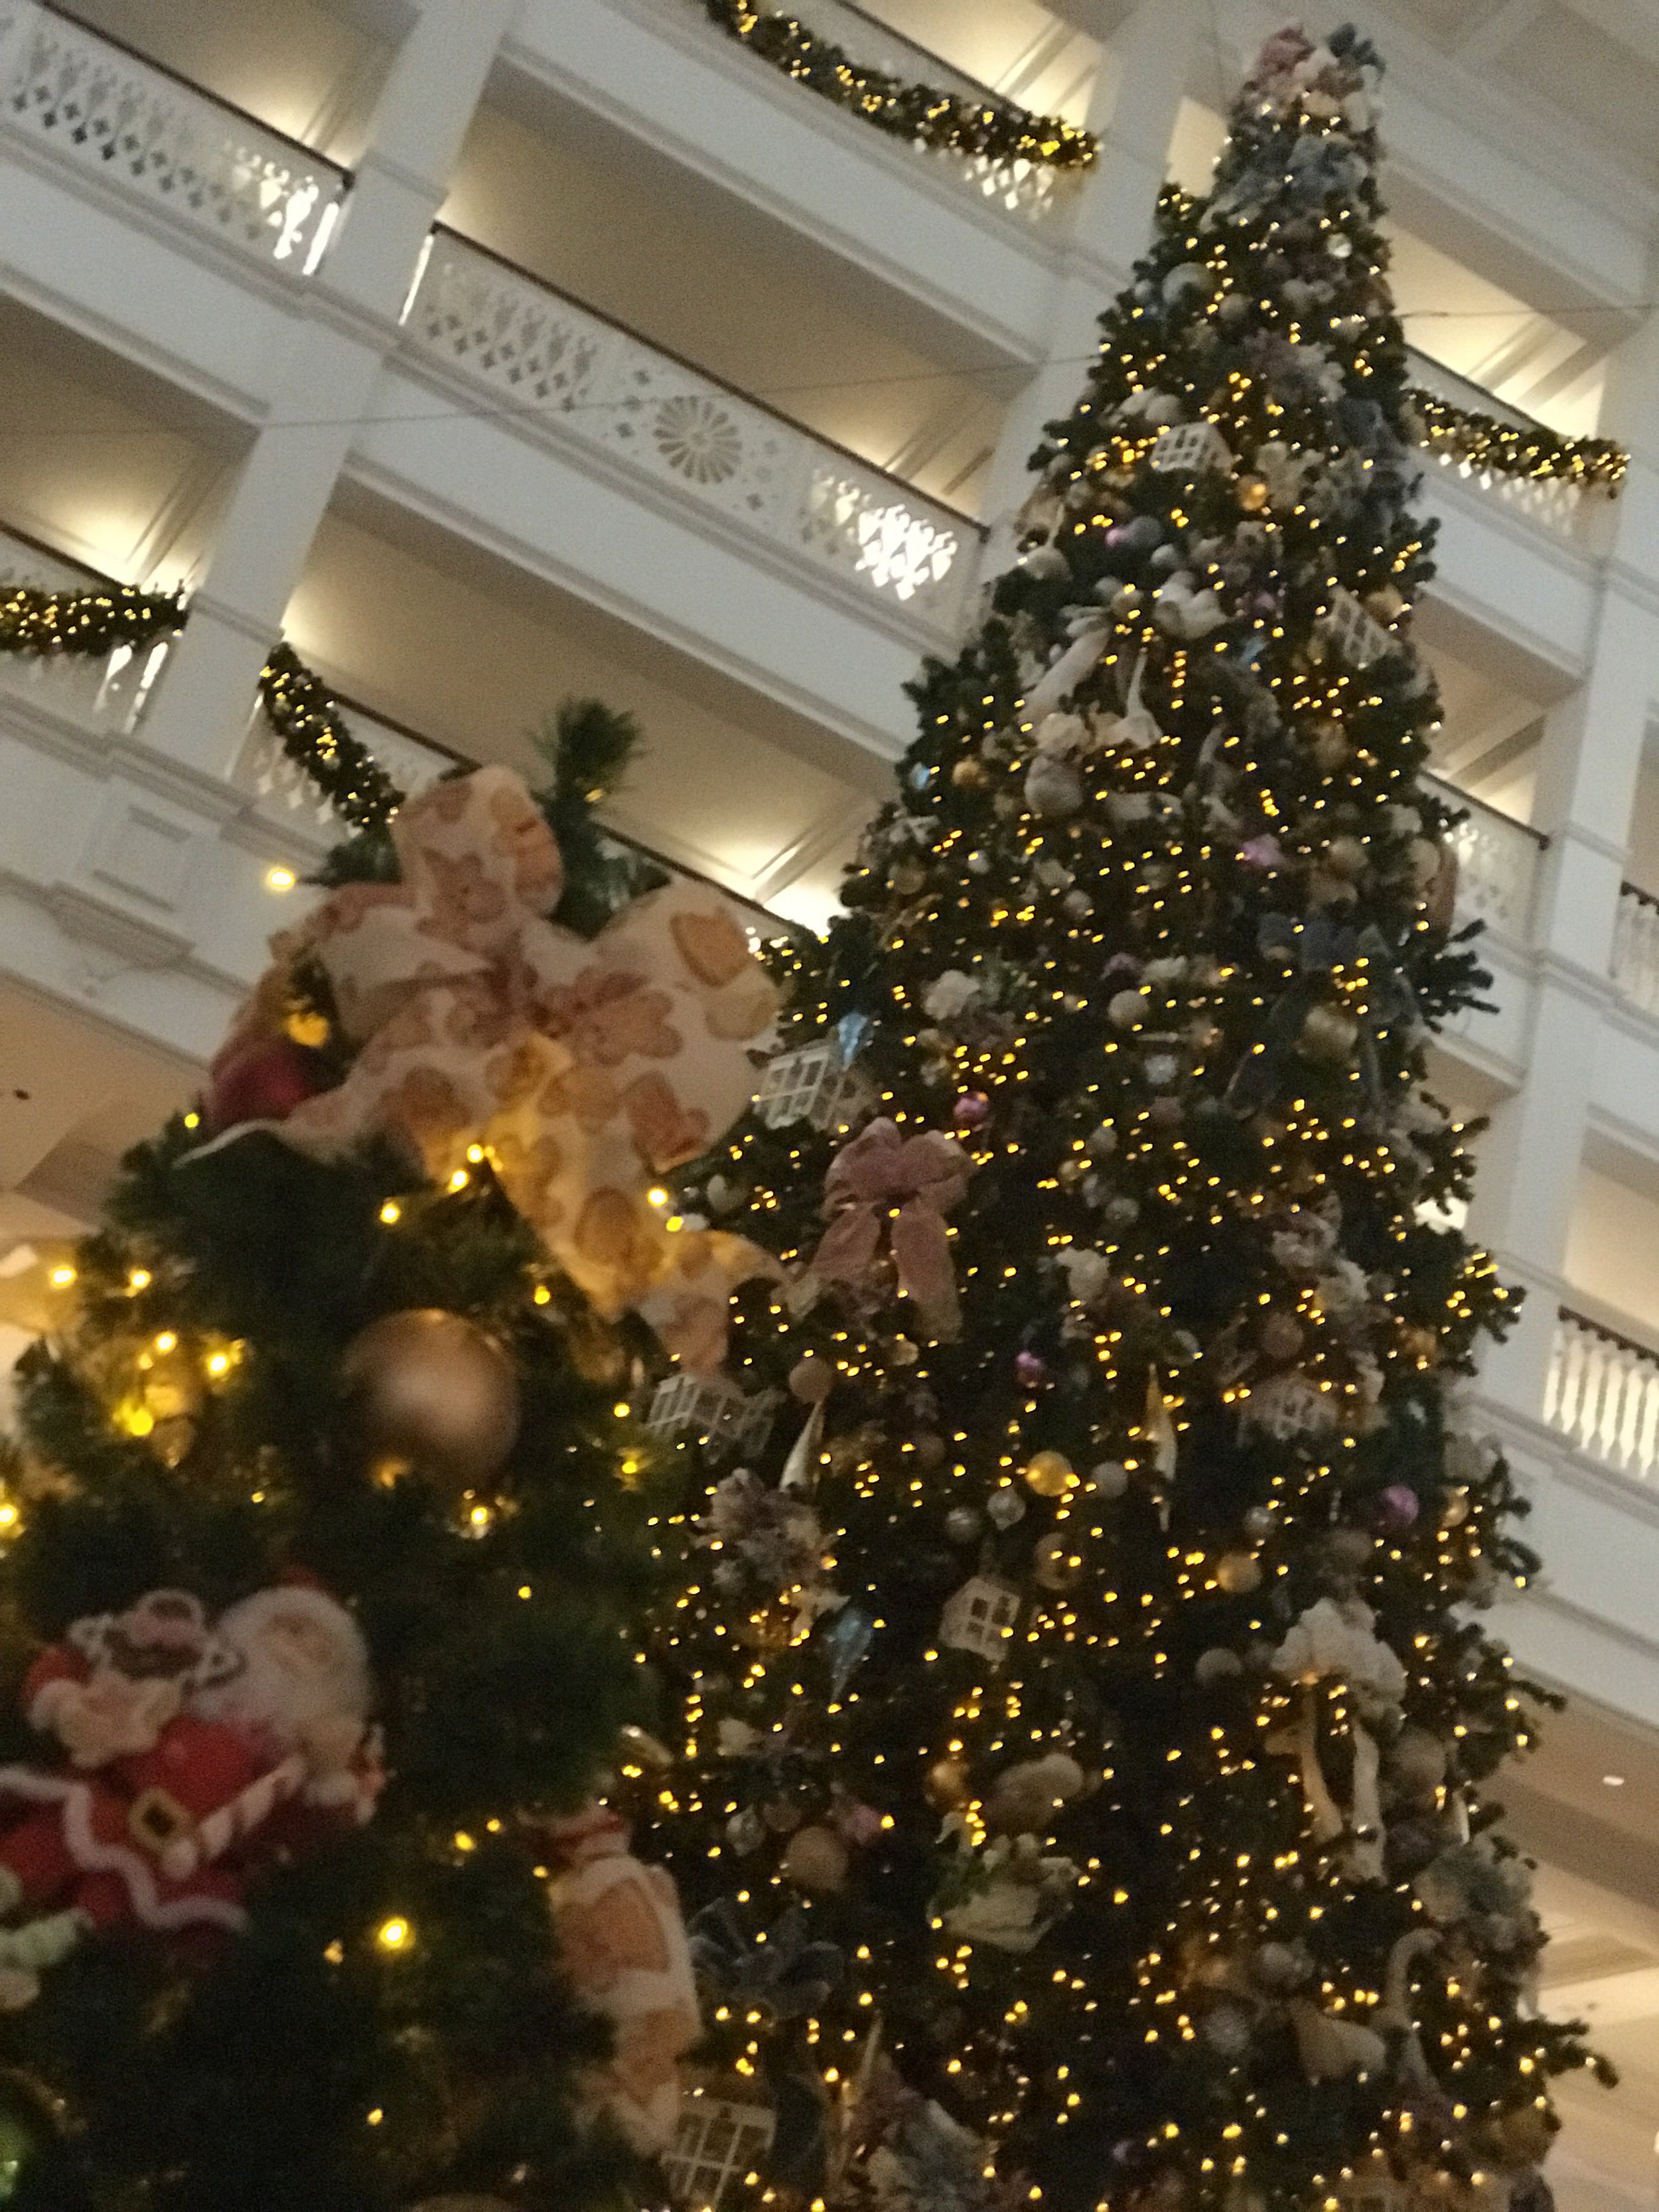 Grand Floridian's Lobby Christmas Tree. The most GRAND tree we've seen inside a hotel!